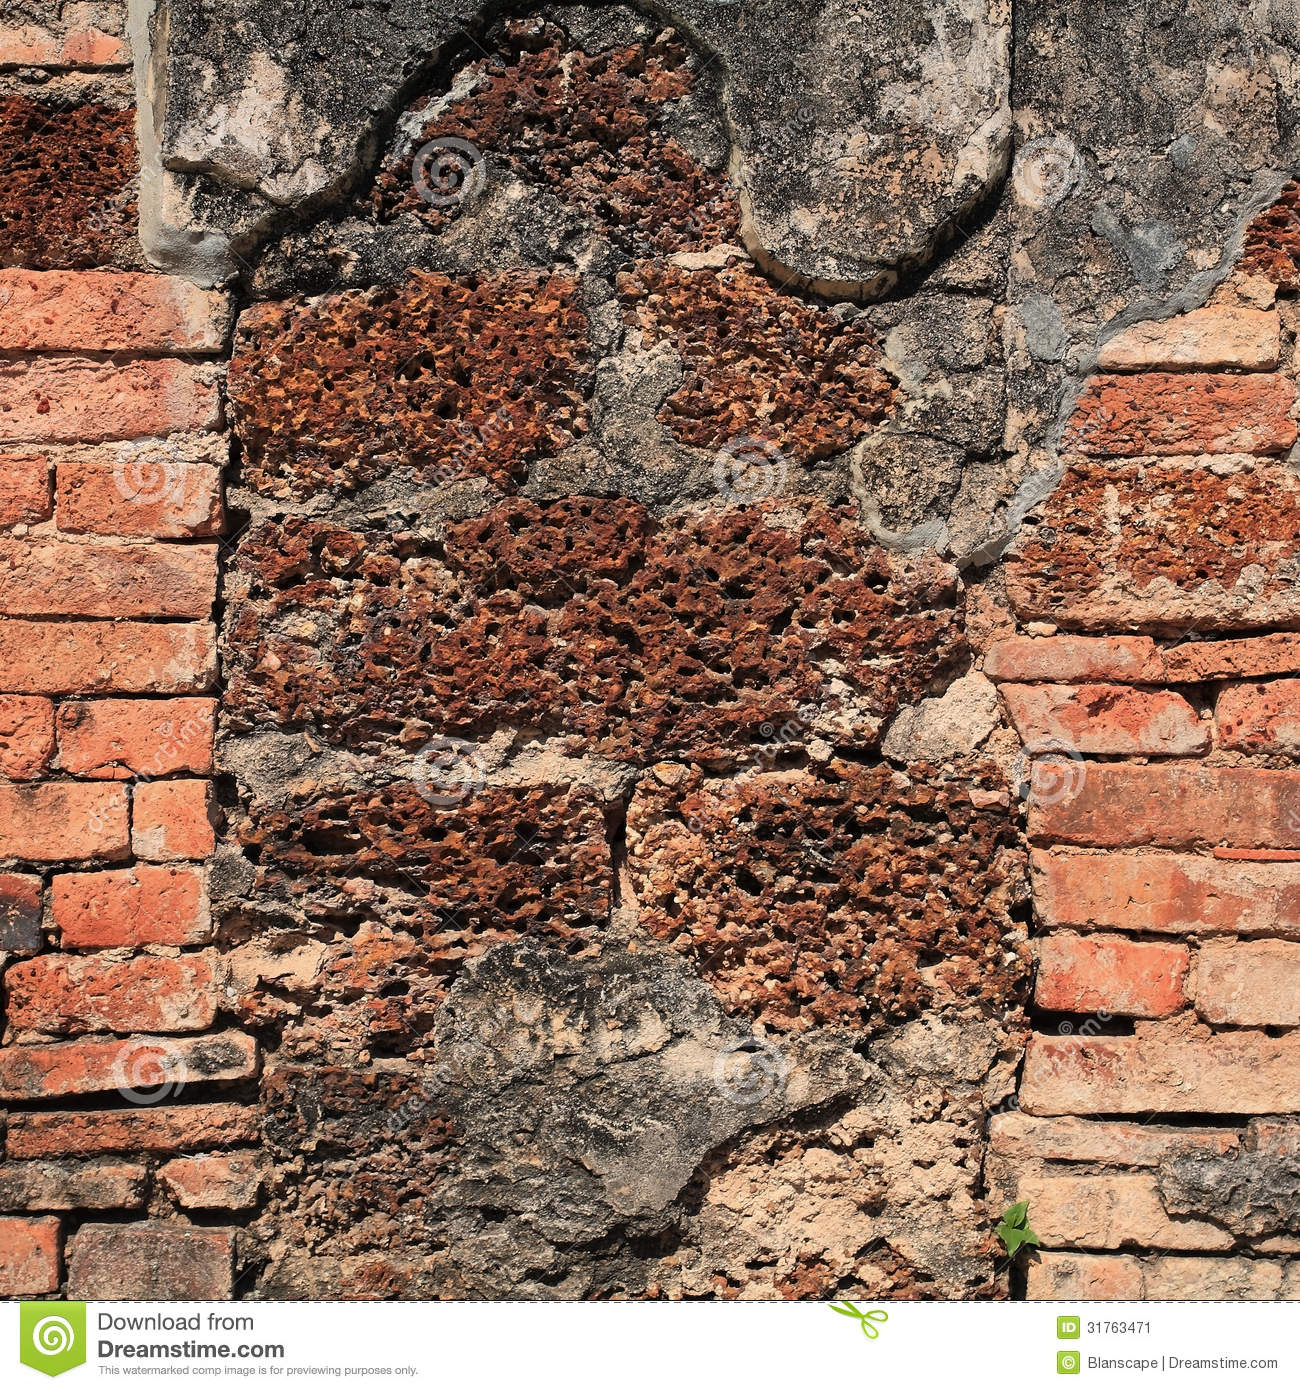 Laterite stone brick wall stock images image 35510874 - Old Weathered Brick And Laterite Stone Stock Image